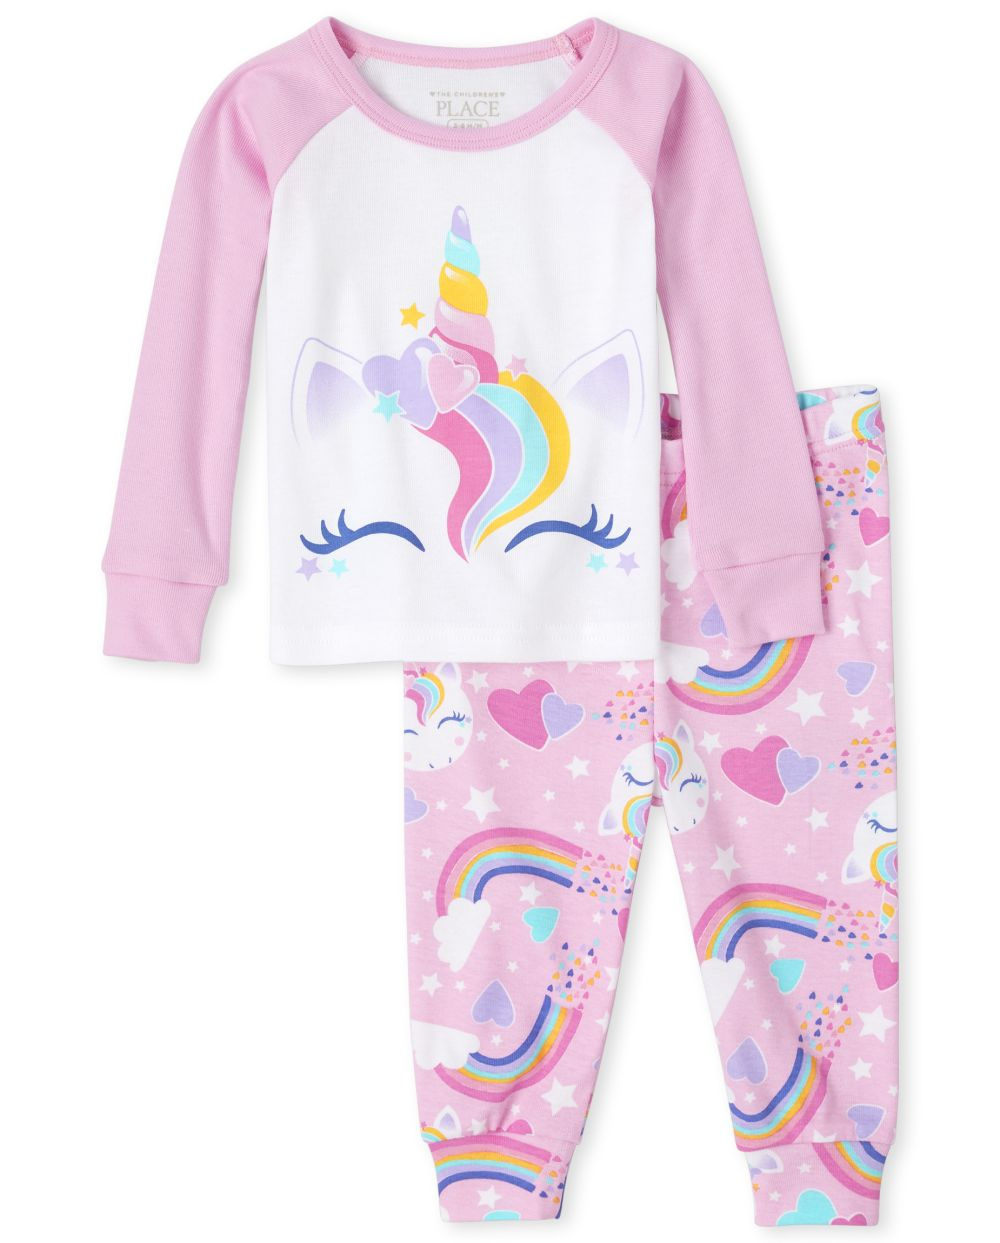 Baby And Toddler Girls Unicorn Snug Fit Cotton Pajamas